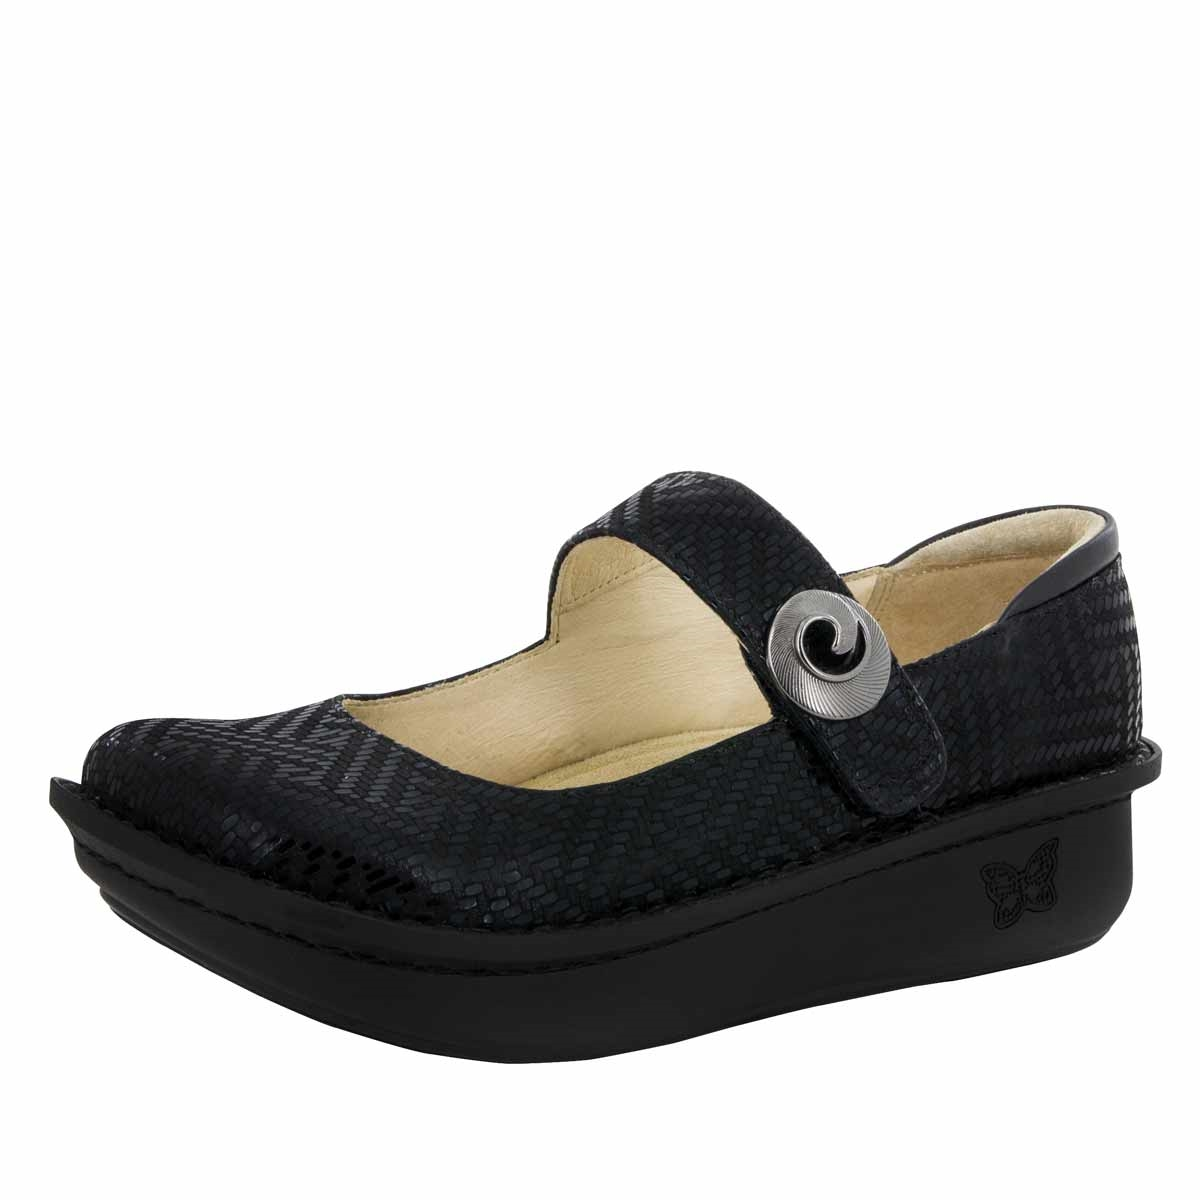 Alegria Paloma Black Dazzler mary jane shoes for women · View Larger Photo  Email ...